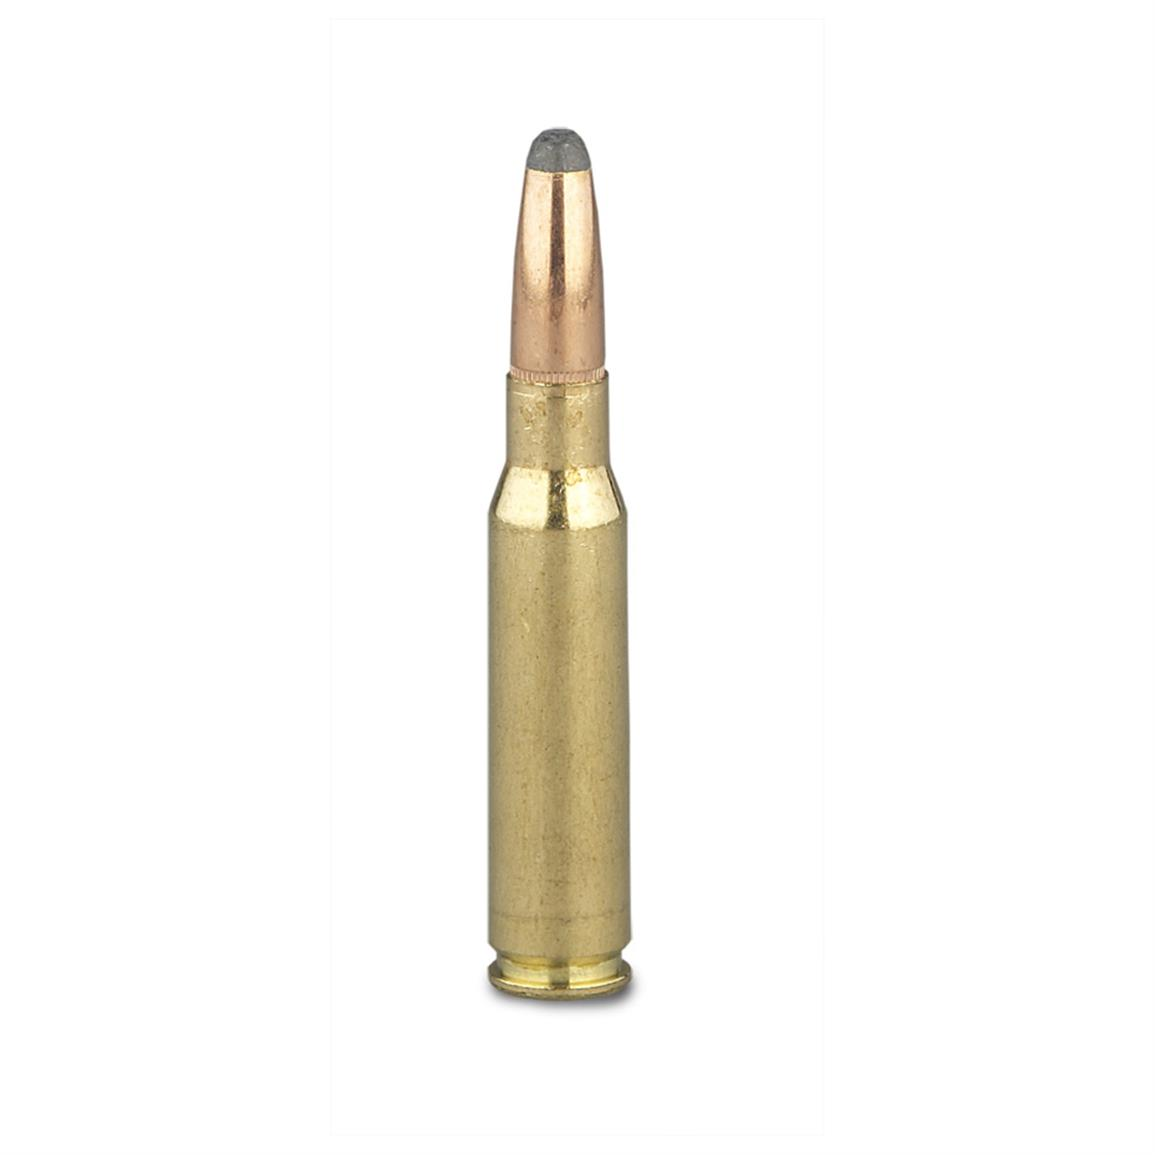 180 Grain soft point bullet